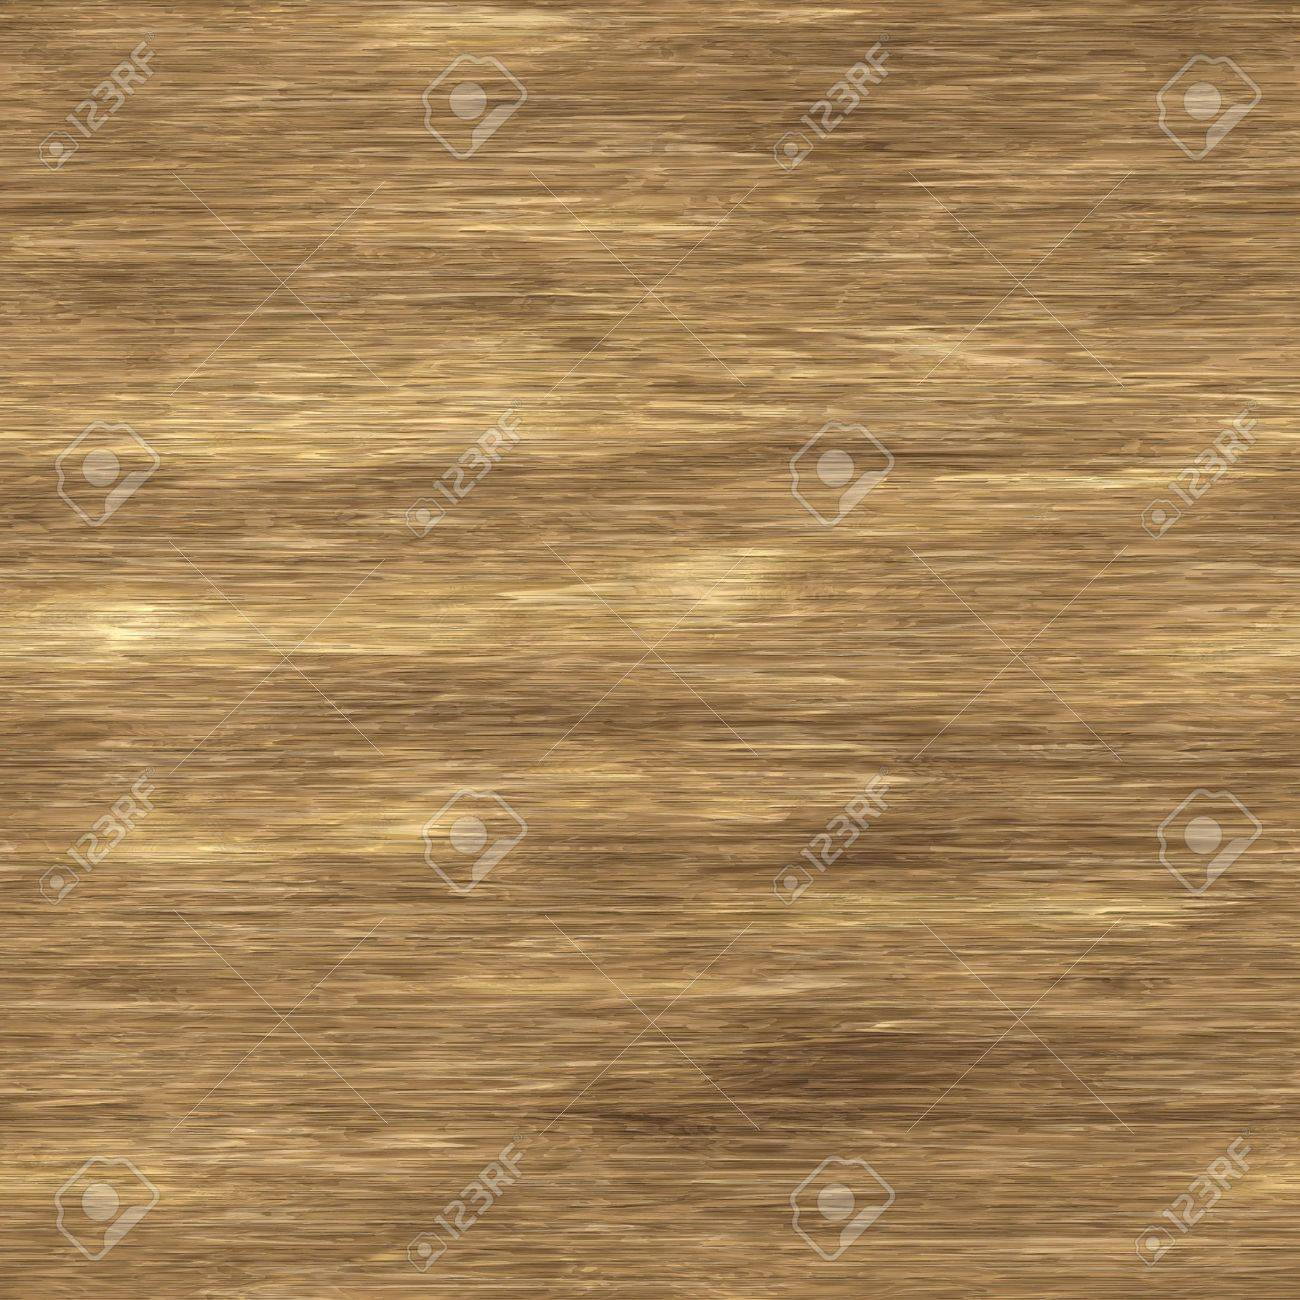 Tileable wood table texture - Seamless Wood Texture In A Grainy Brown Stock Photo 6796746